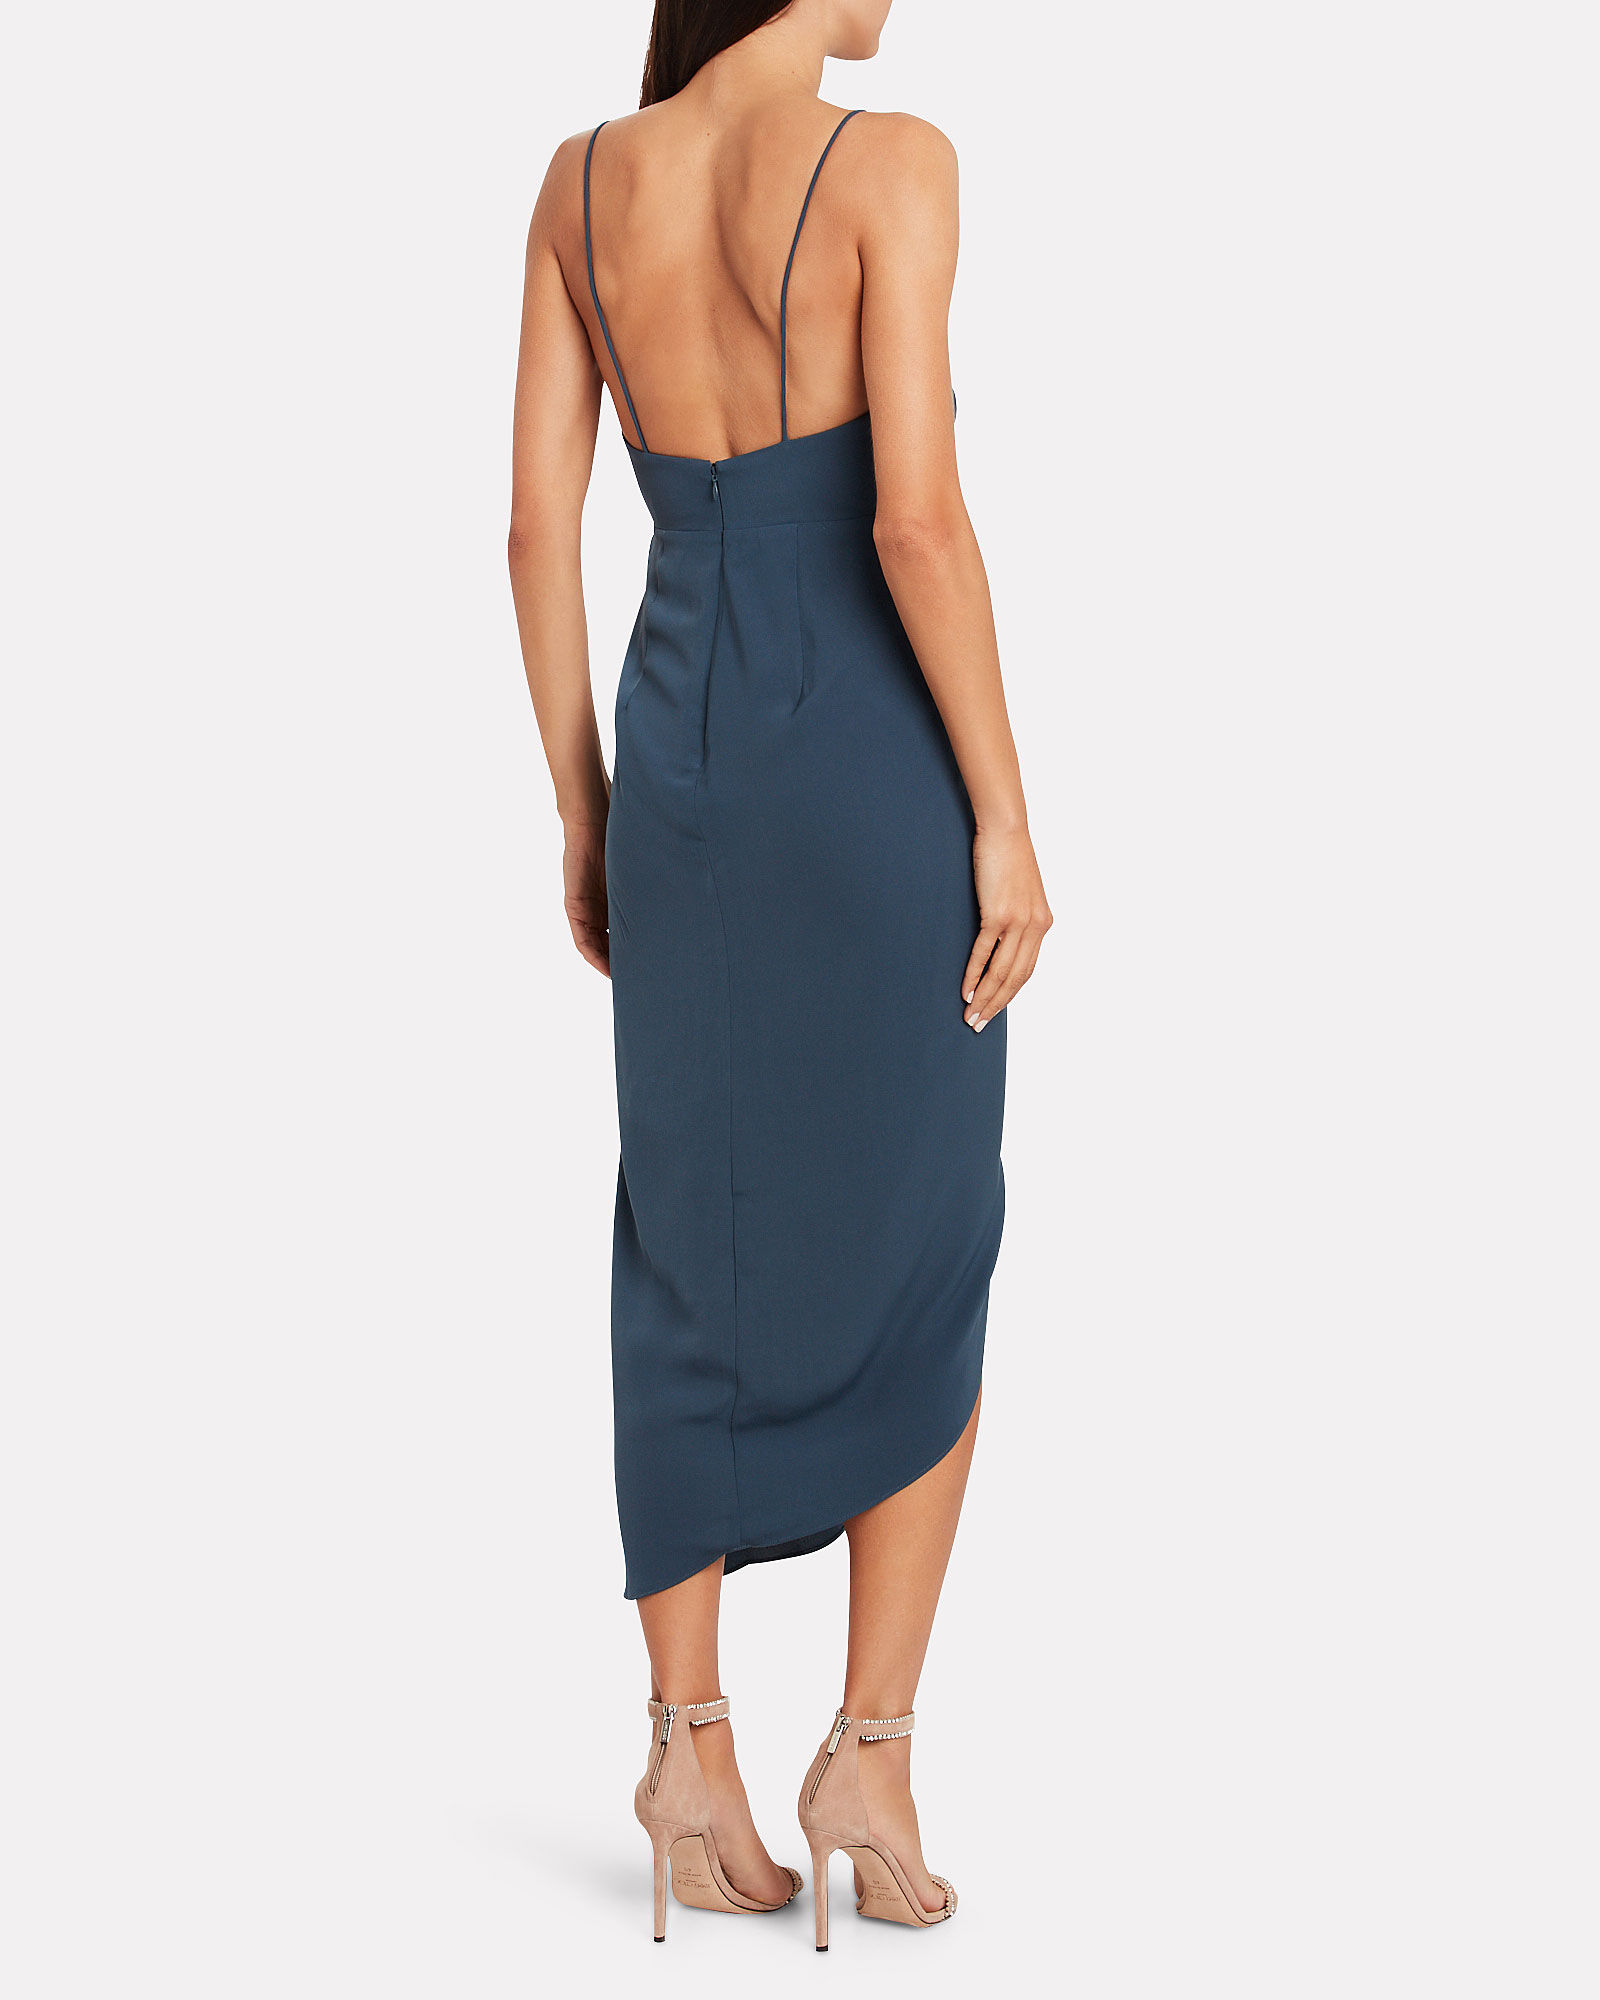 Thea Draped Crepe Dress, BLUE-MED, hi-res